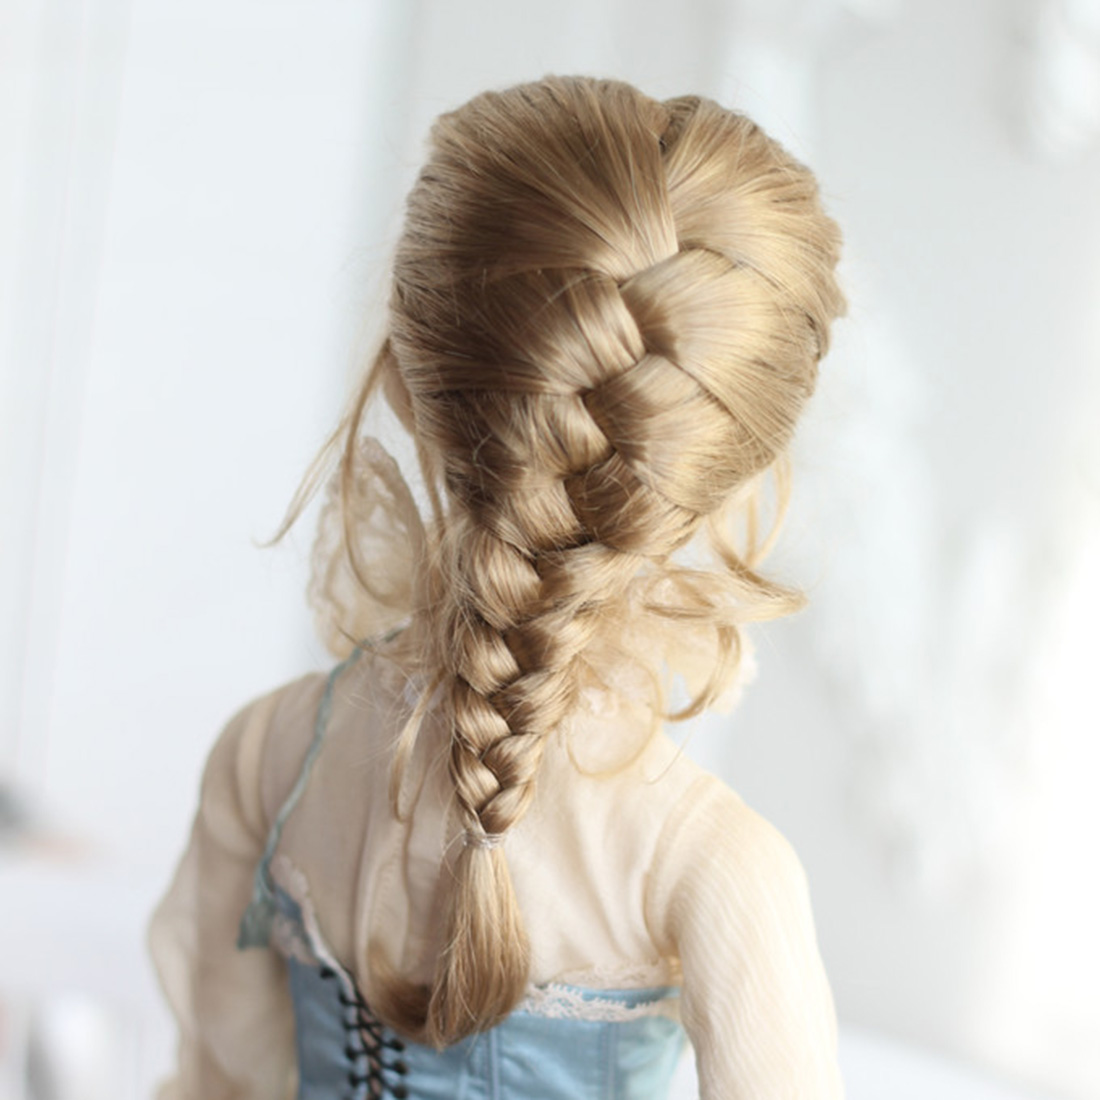 7-8 Inches BJD Dolls Accessories Female Doll Wig Braided Wig For 1/4 BJD Dolls For Children Educational Toys Gift - Light Brown